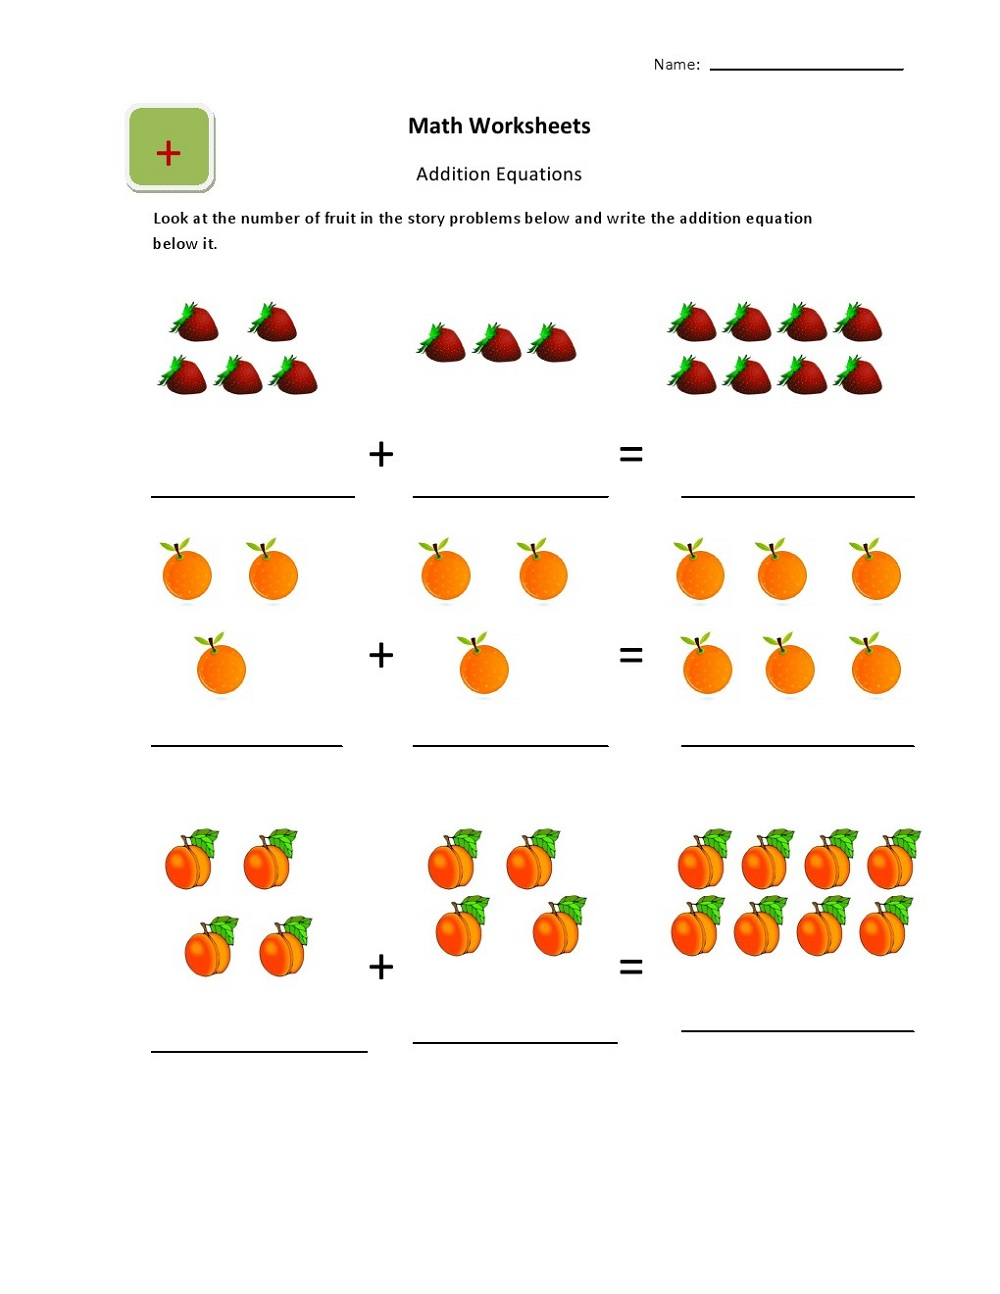 Children's Worksheets Free Math